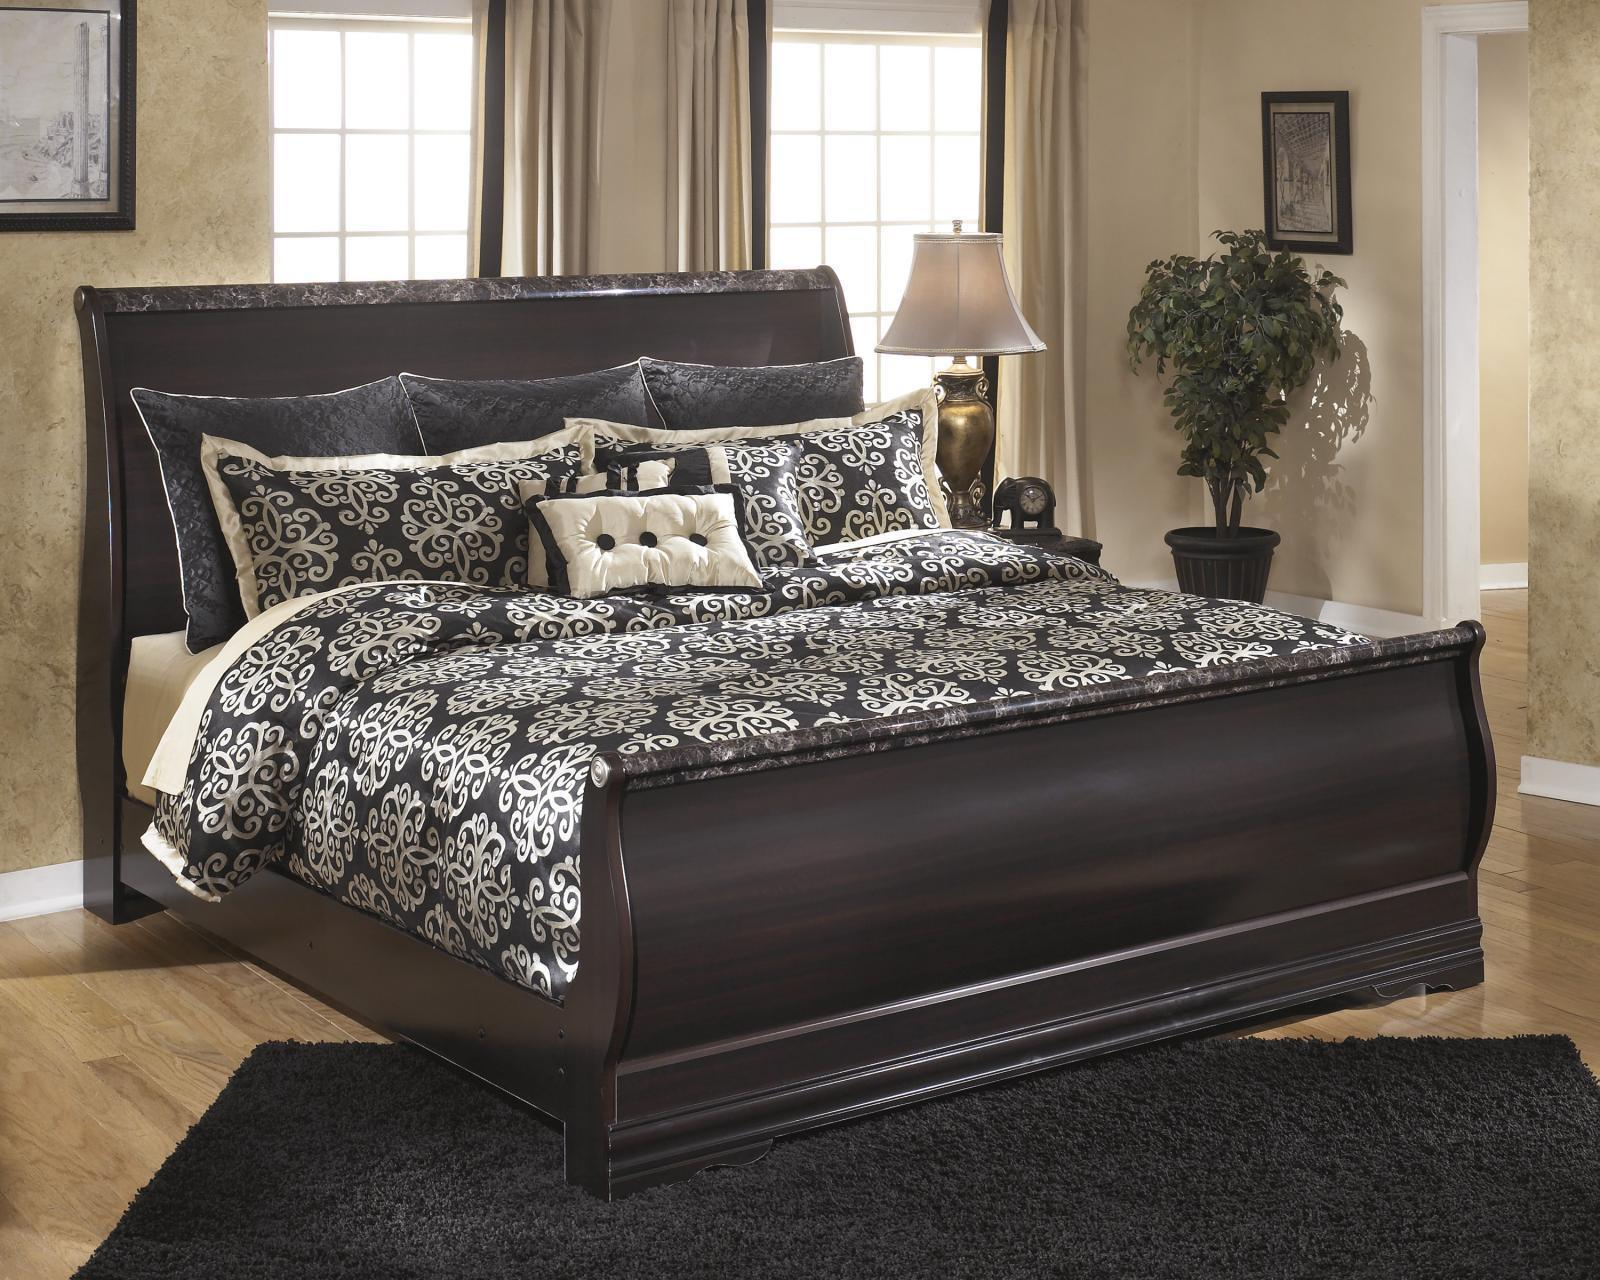 ashley esmarelda b179 king size sleigh bedroom set 2 night stands traditional bedroom sets. Black Bedroom Furniture Sets. Home Design Ideas